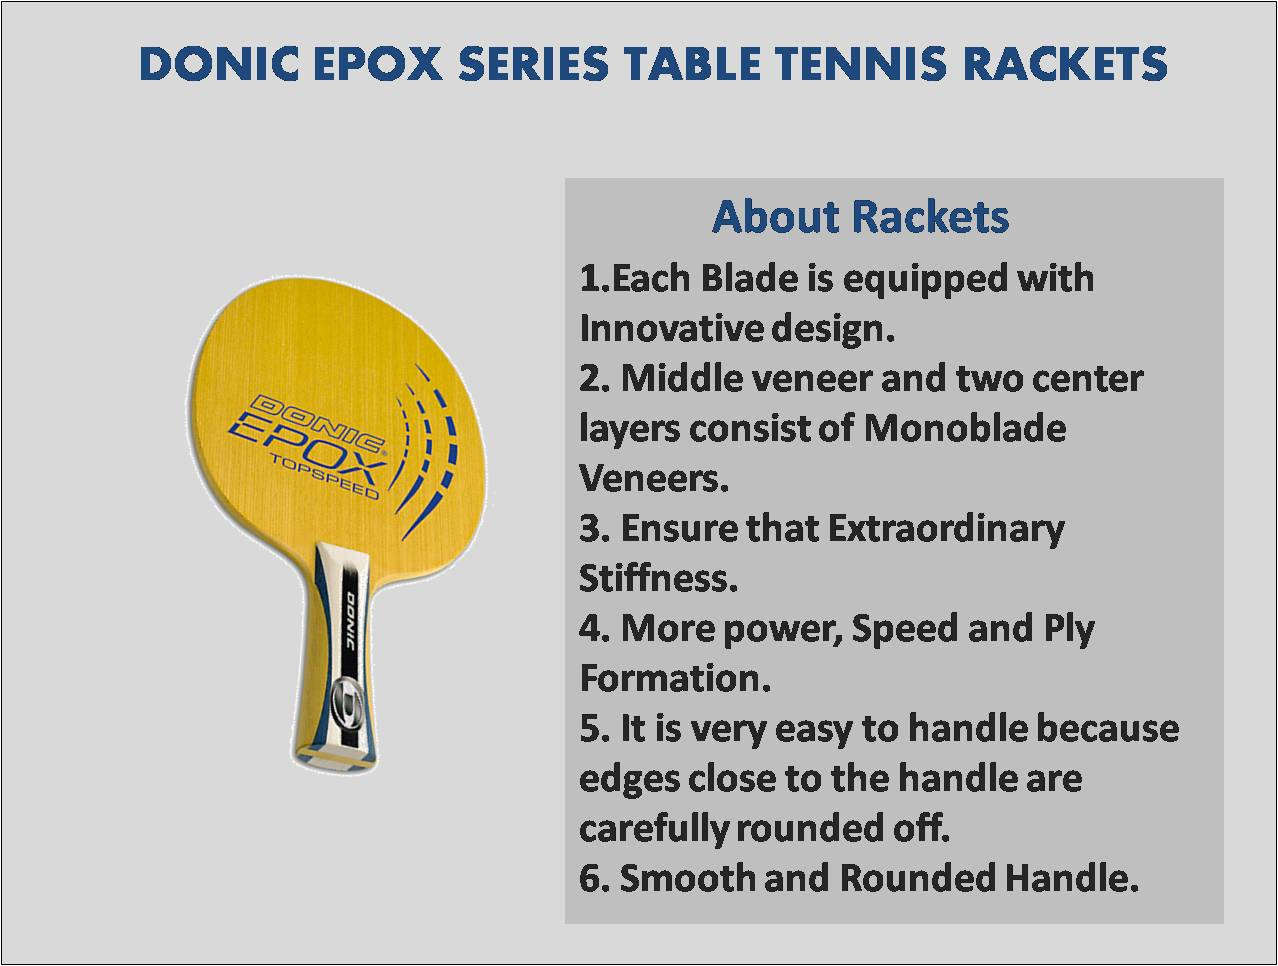 About Donic EPOX Series Table Tennis Rackets